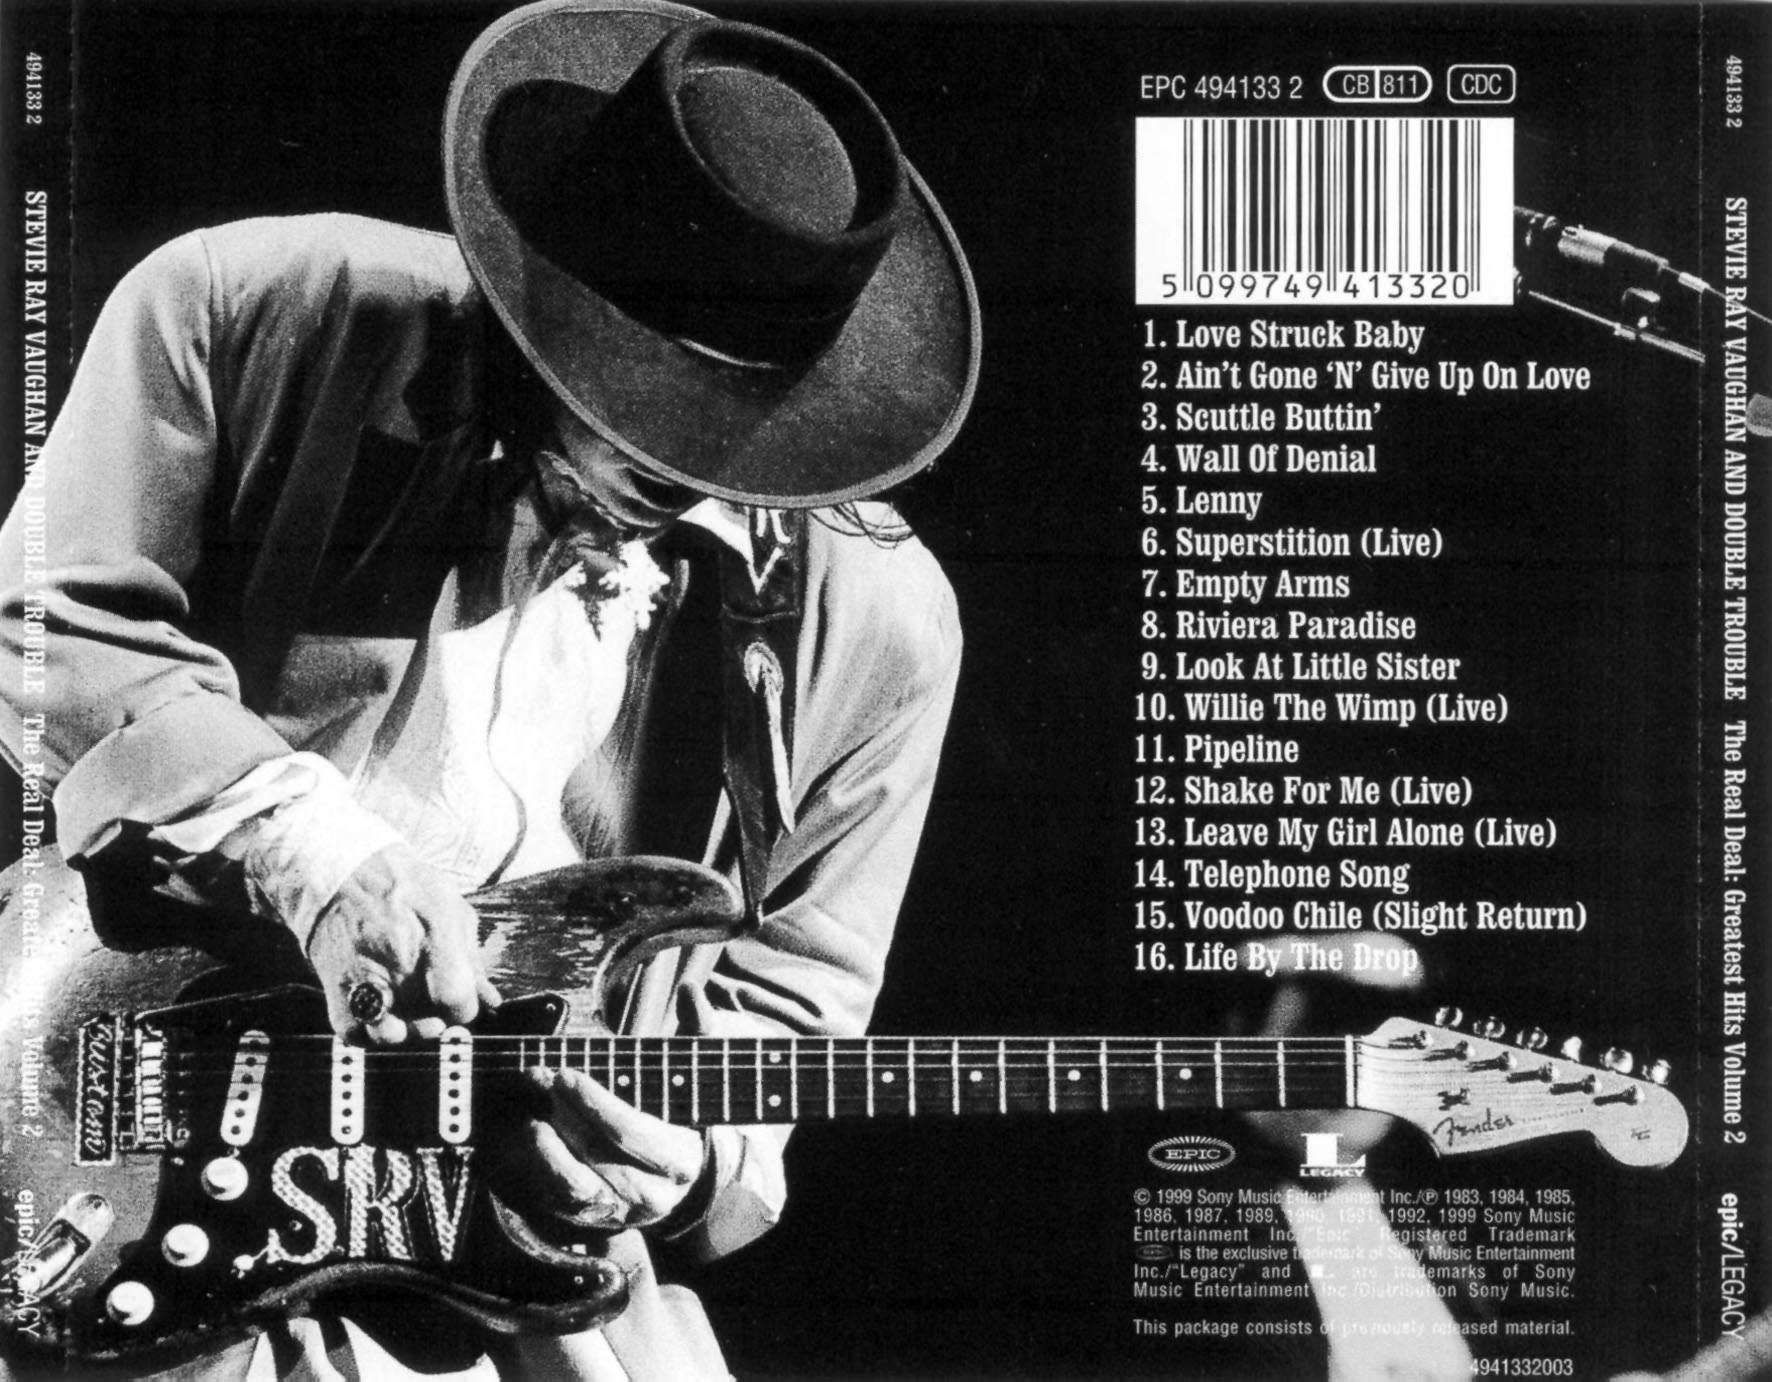 stevie ray vaughan | Stevie_Ray_Vaughan-The_Real_Deal-Trasera.jpg